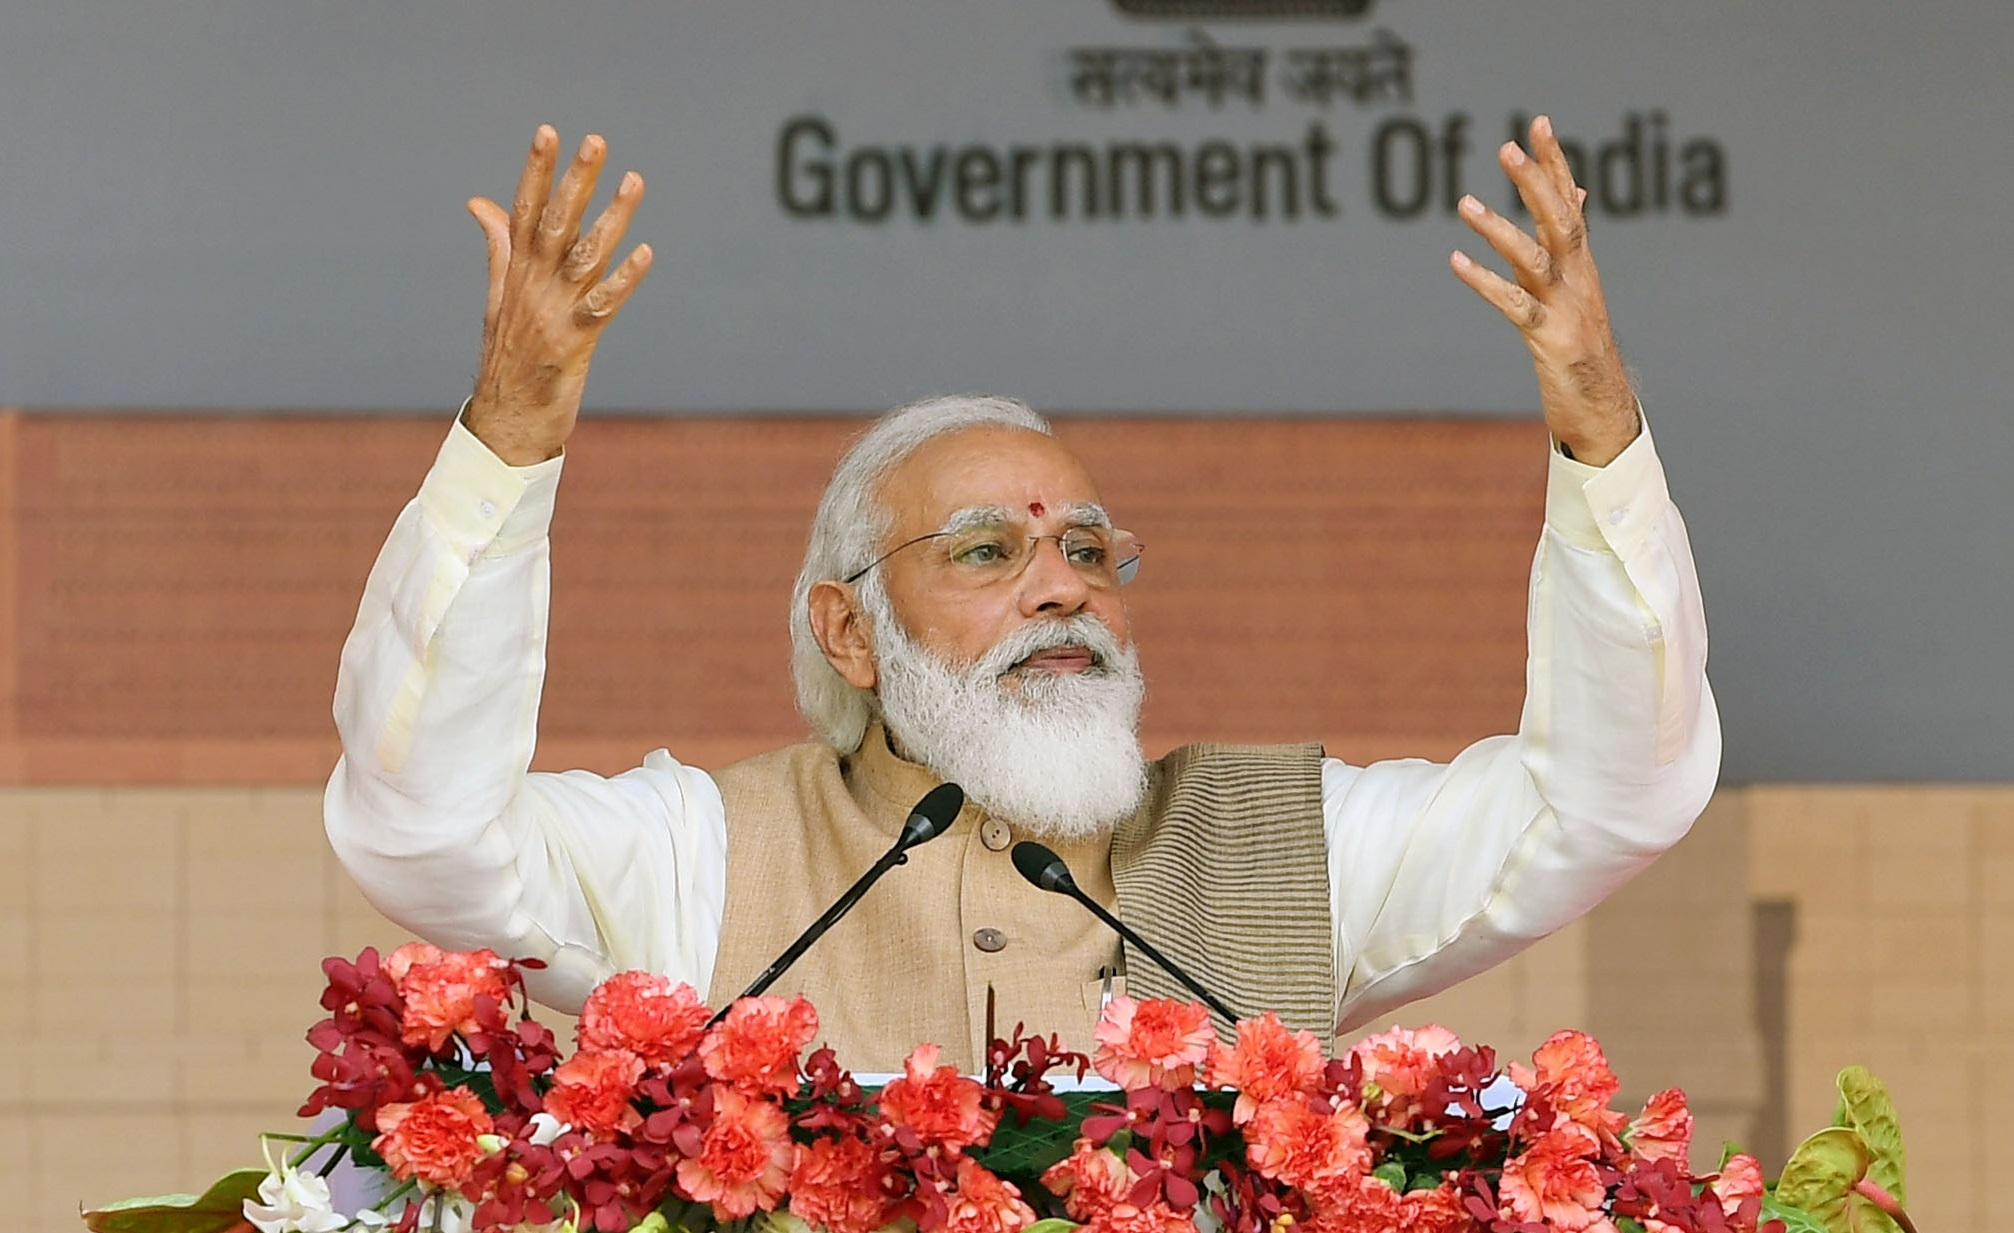 Farm laws will bring investments, technology and create new markets: Modi